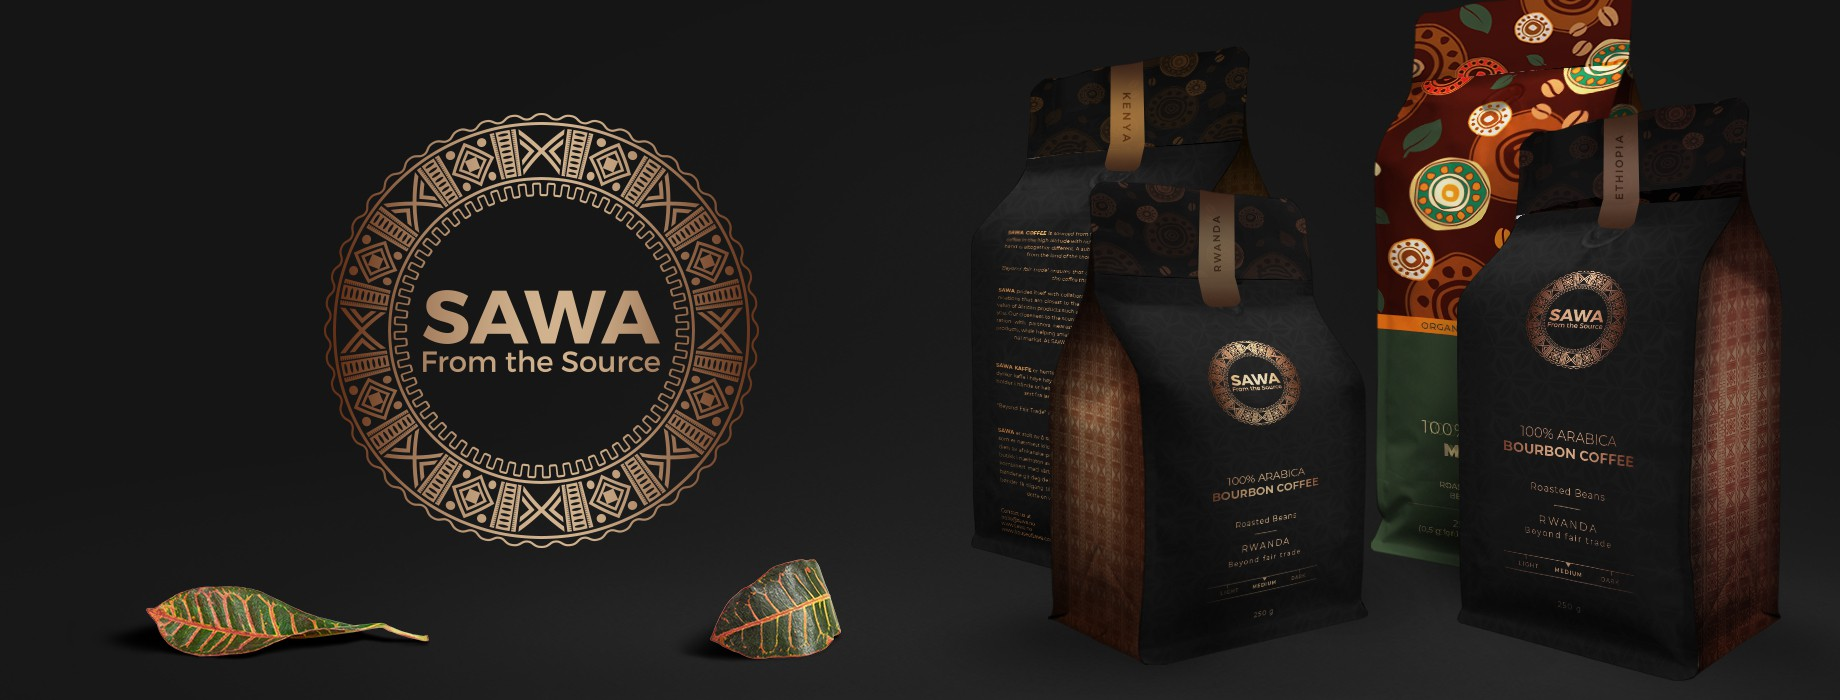 Sawa Brand and Logo Package and Coffee Packaging